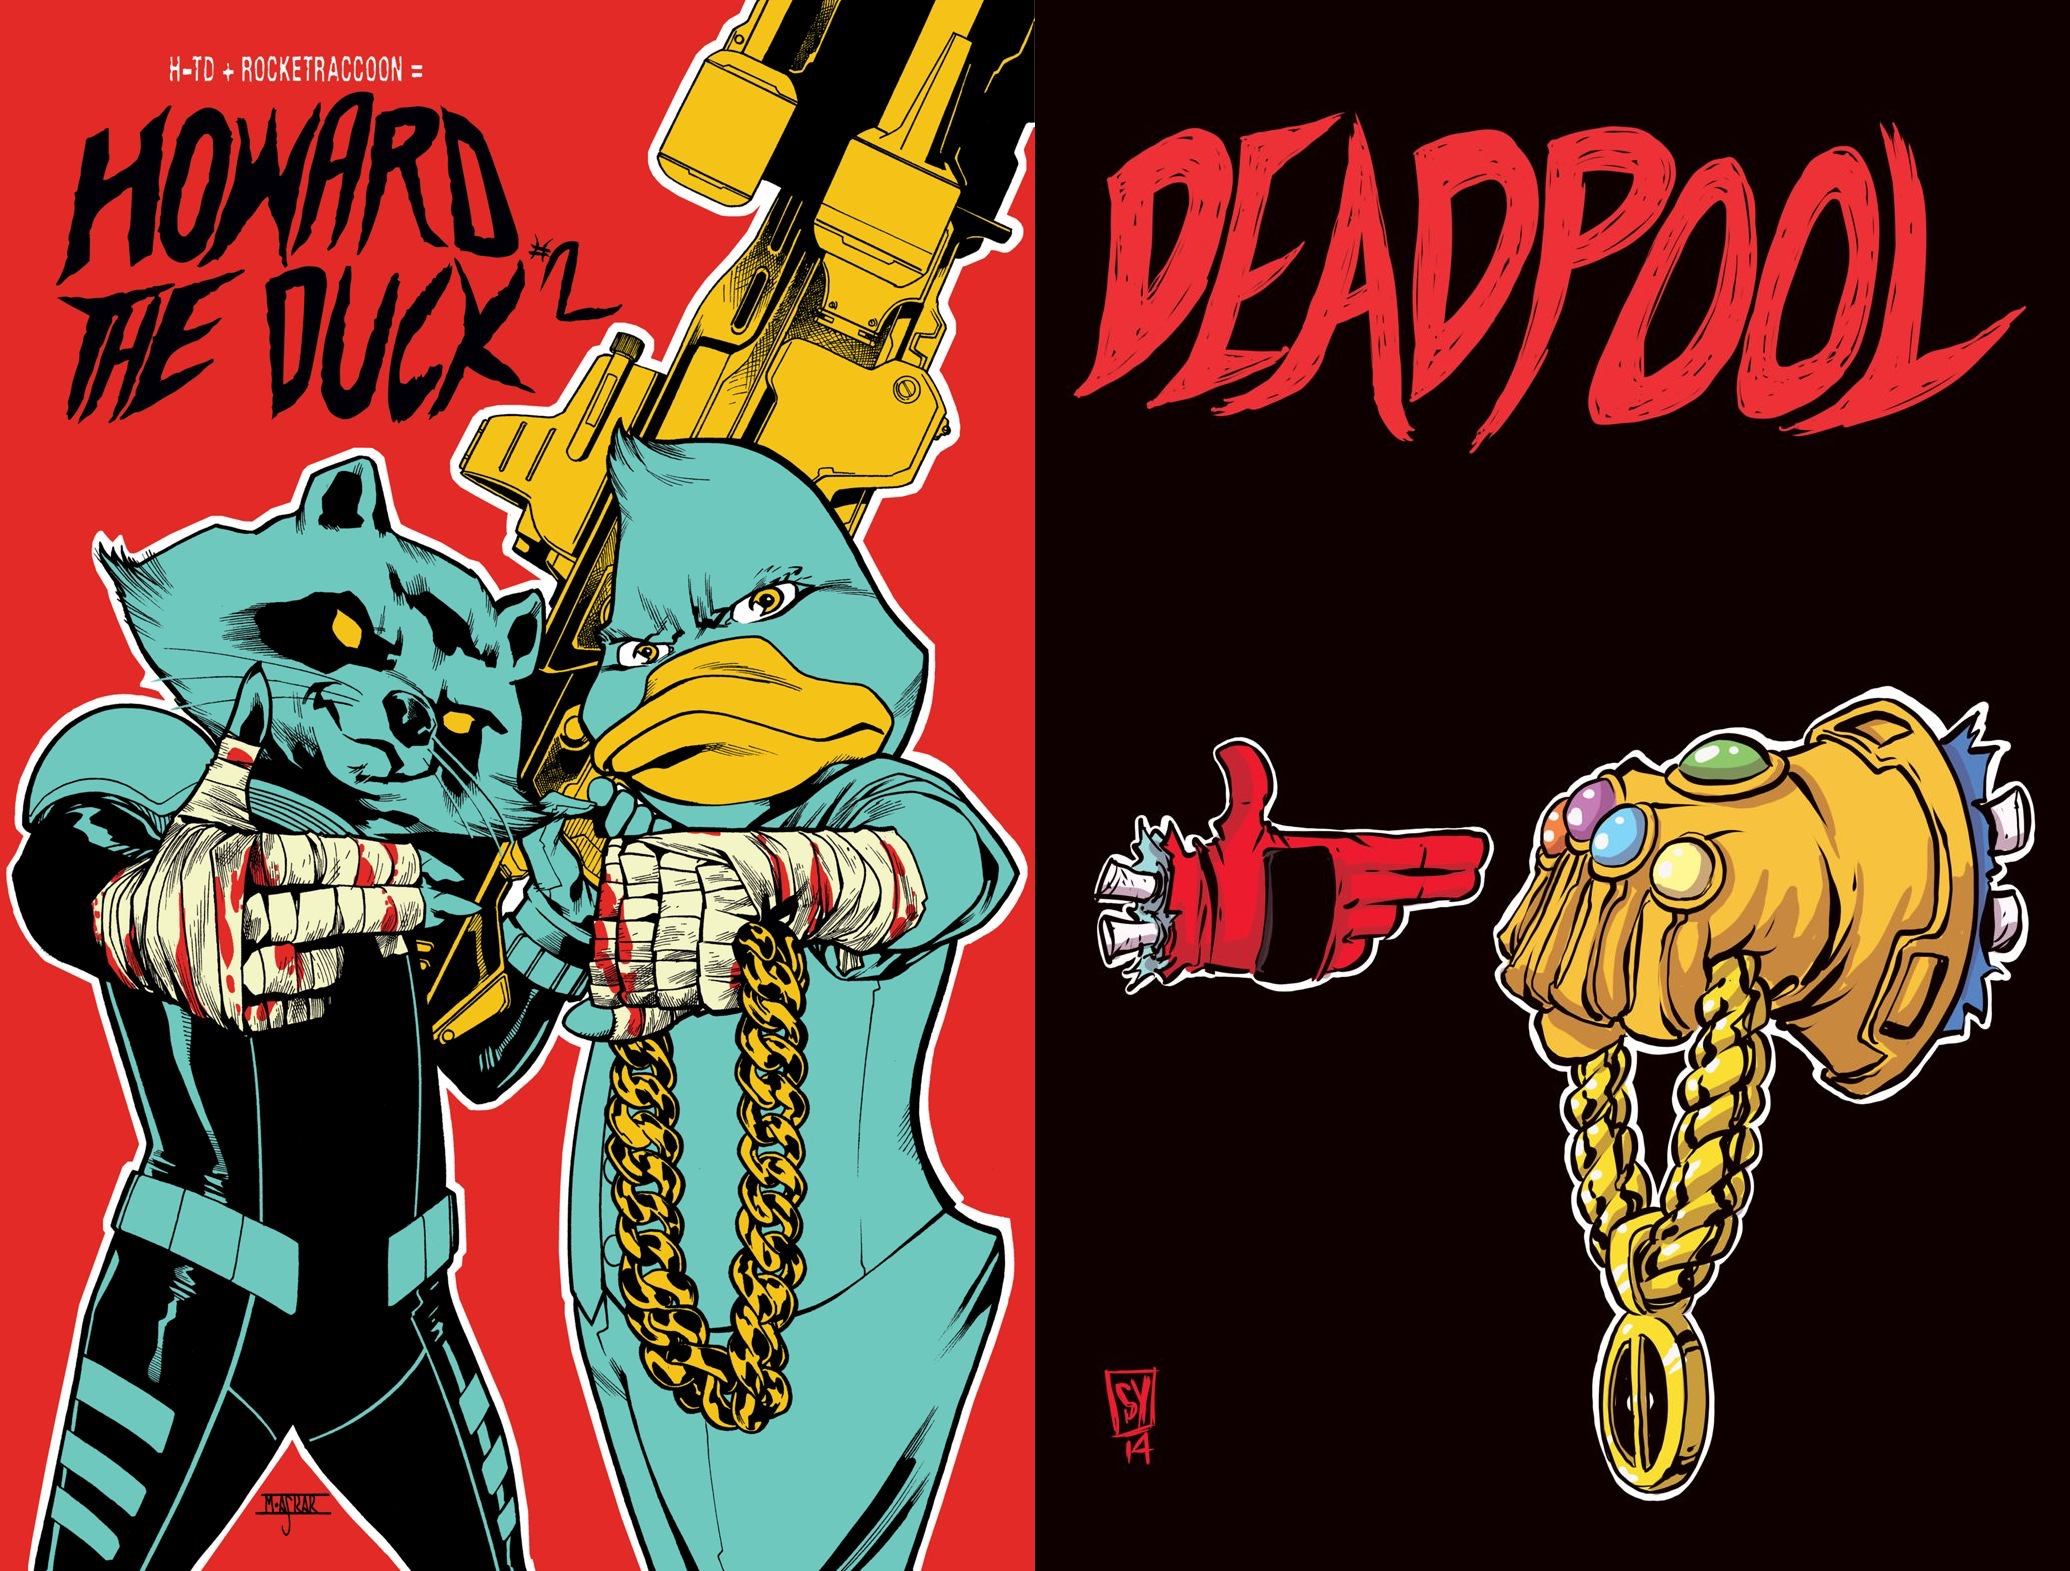 Marvel Celebrates Run The Jewels With New Howard The Duck